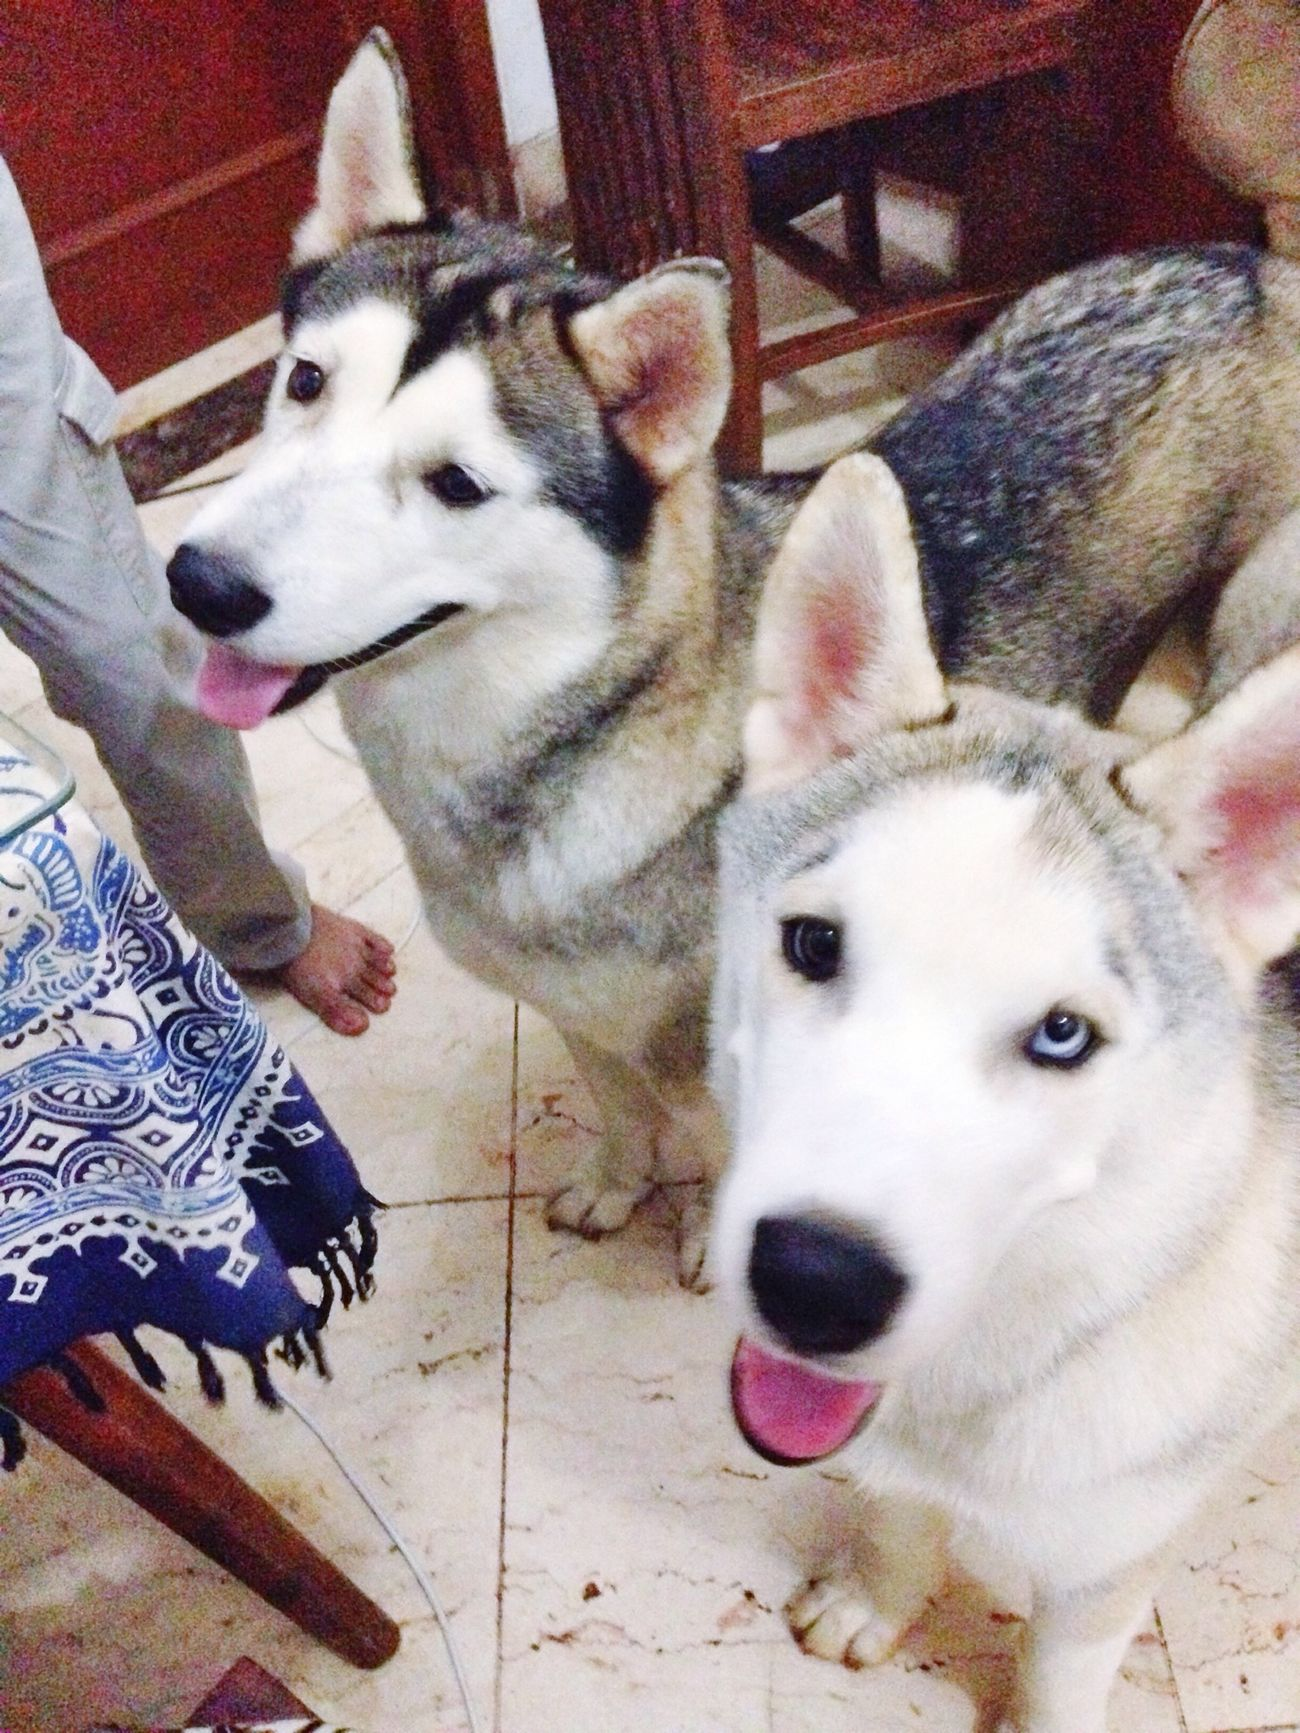 Kazuo and Baileys Familia By ITag Pets By ITag Animal By ITag Hobbies By ITag The Families By ITag